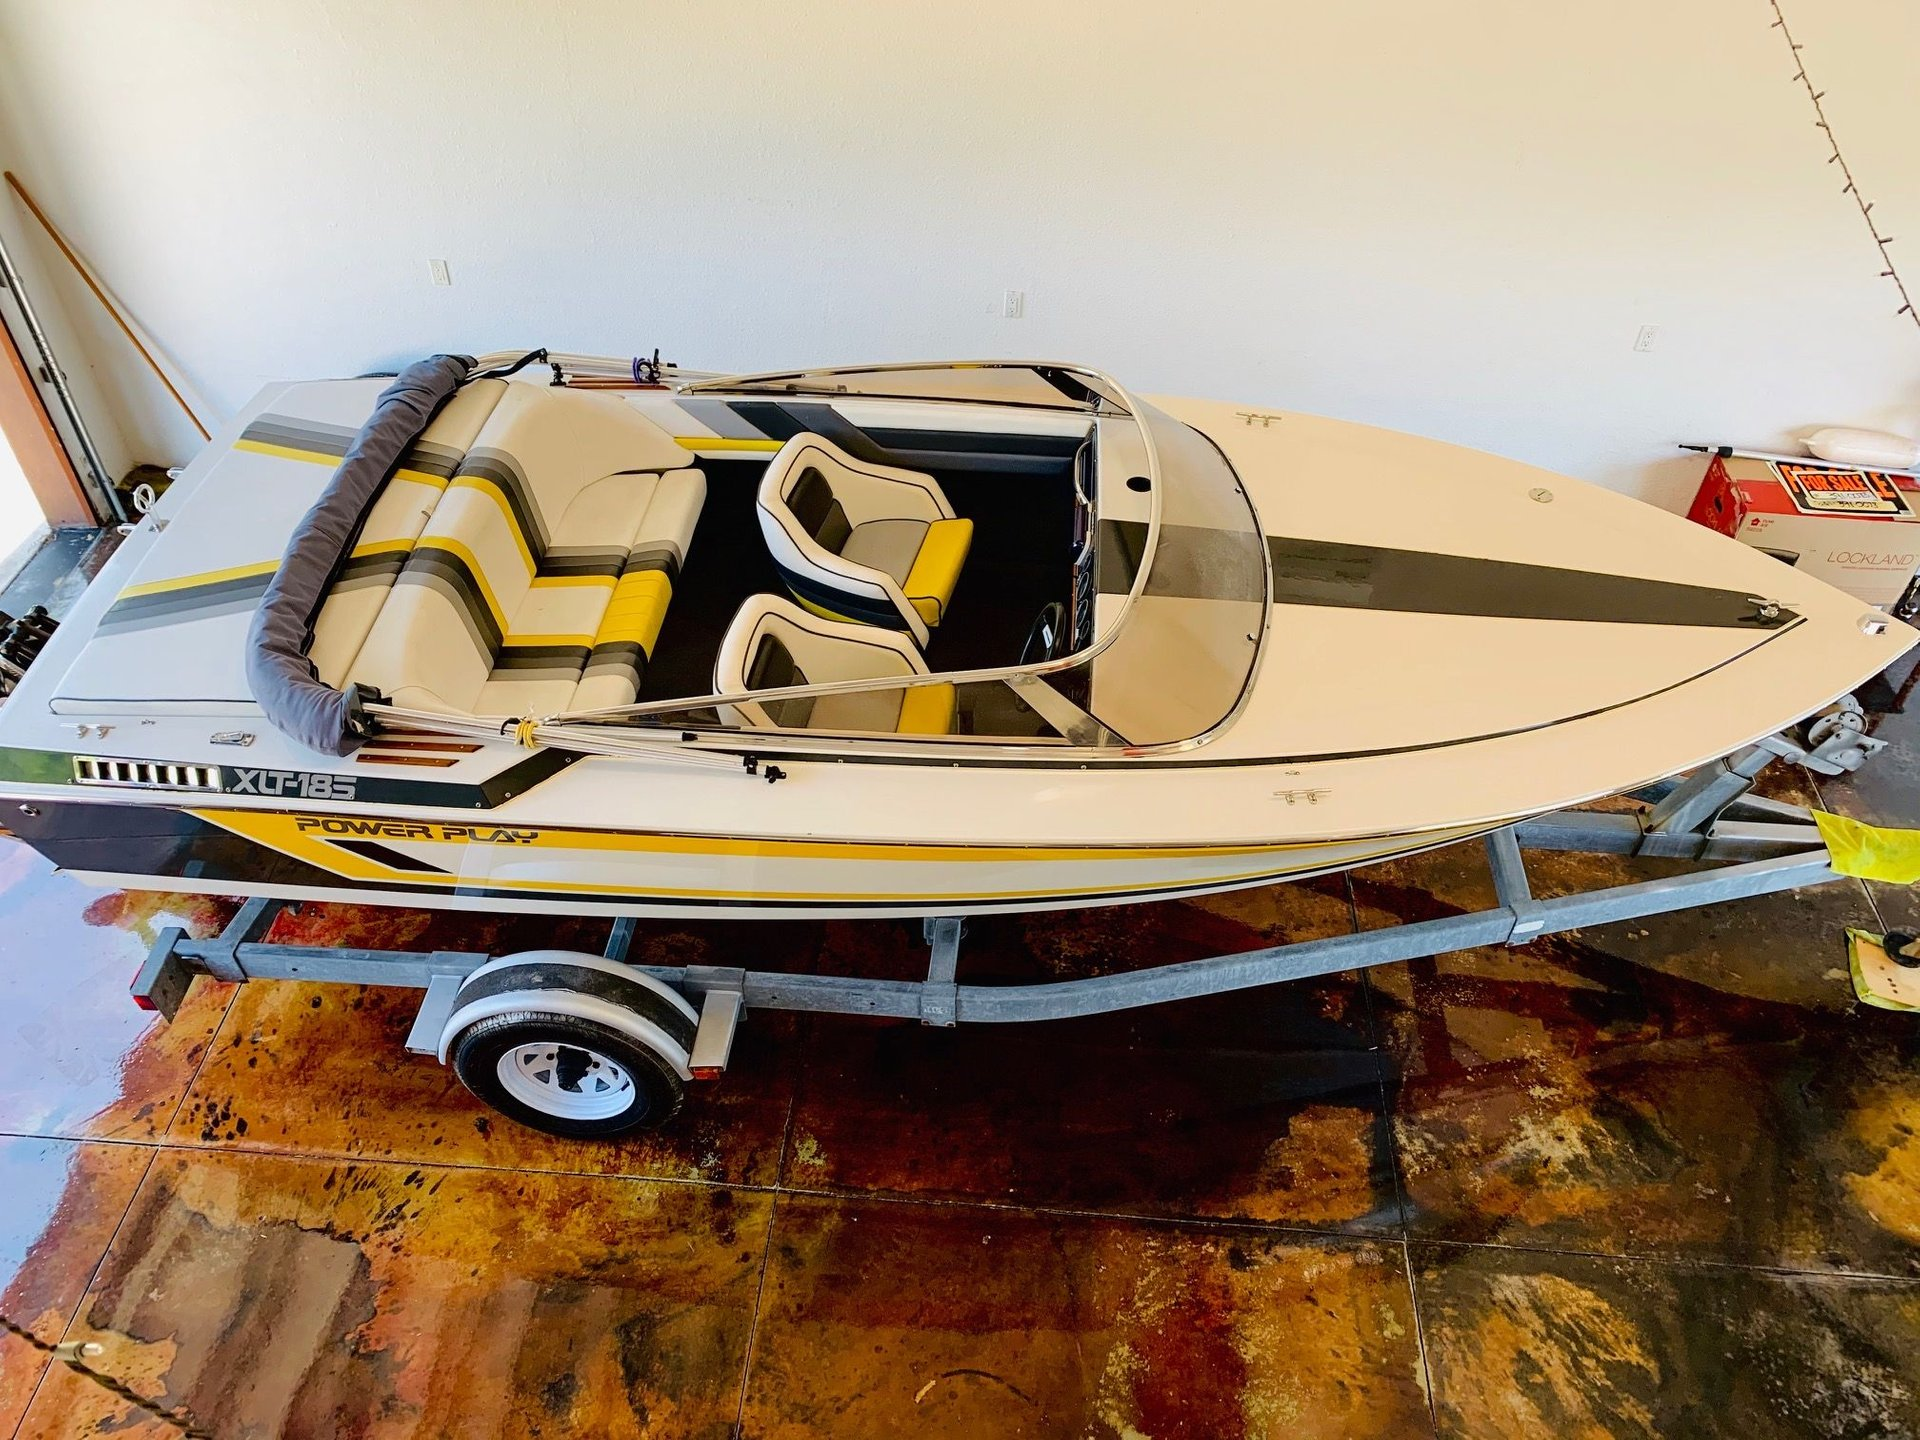 1989 power play 185 xlt speed boat